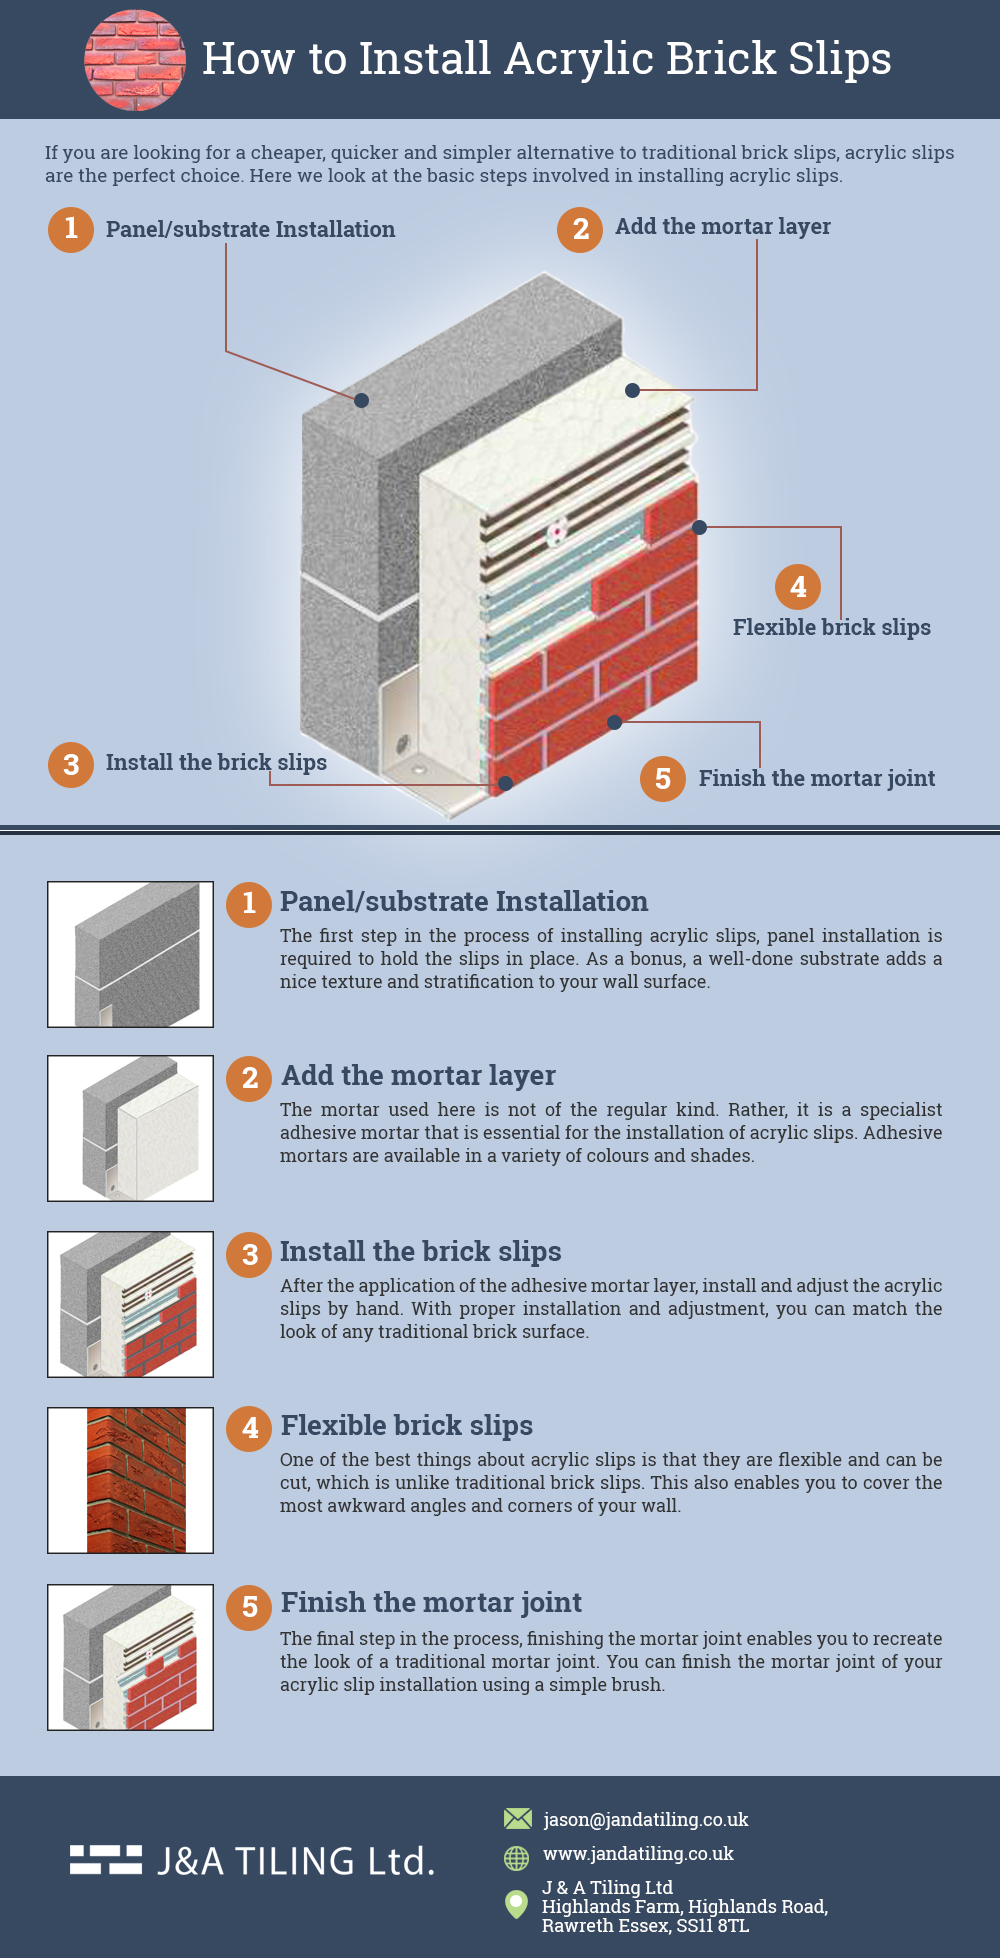 How to Install Acrylic Brick Slips